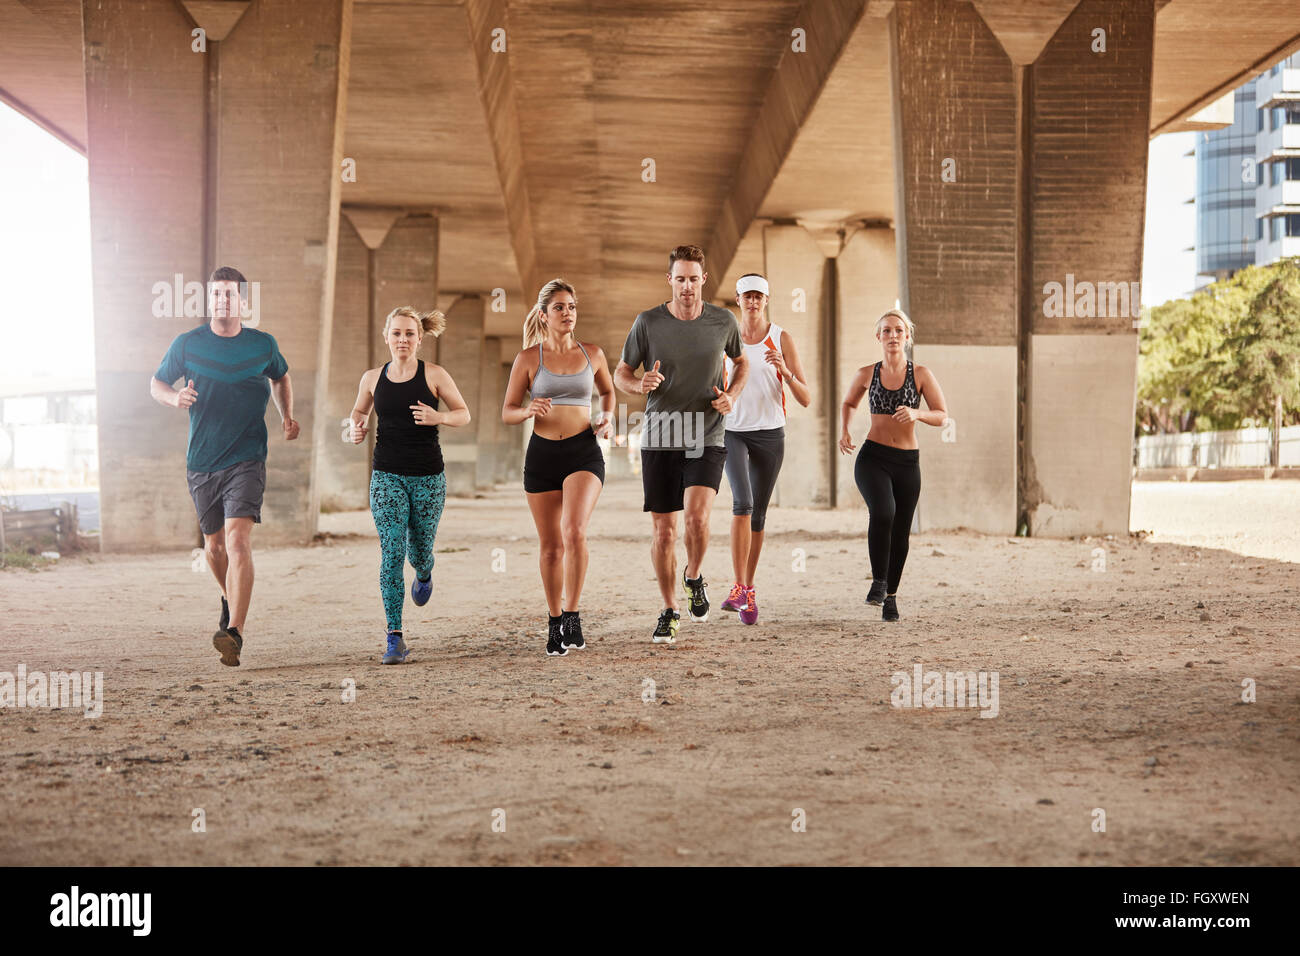 Portrait of group of healthy young people running together in city. Running club members training together in morning - Stock Image